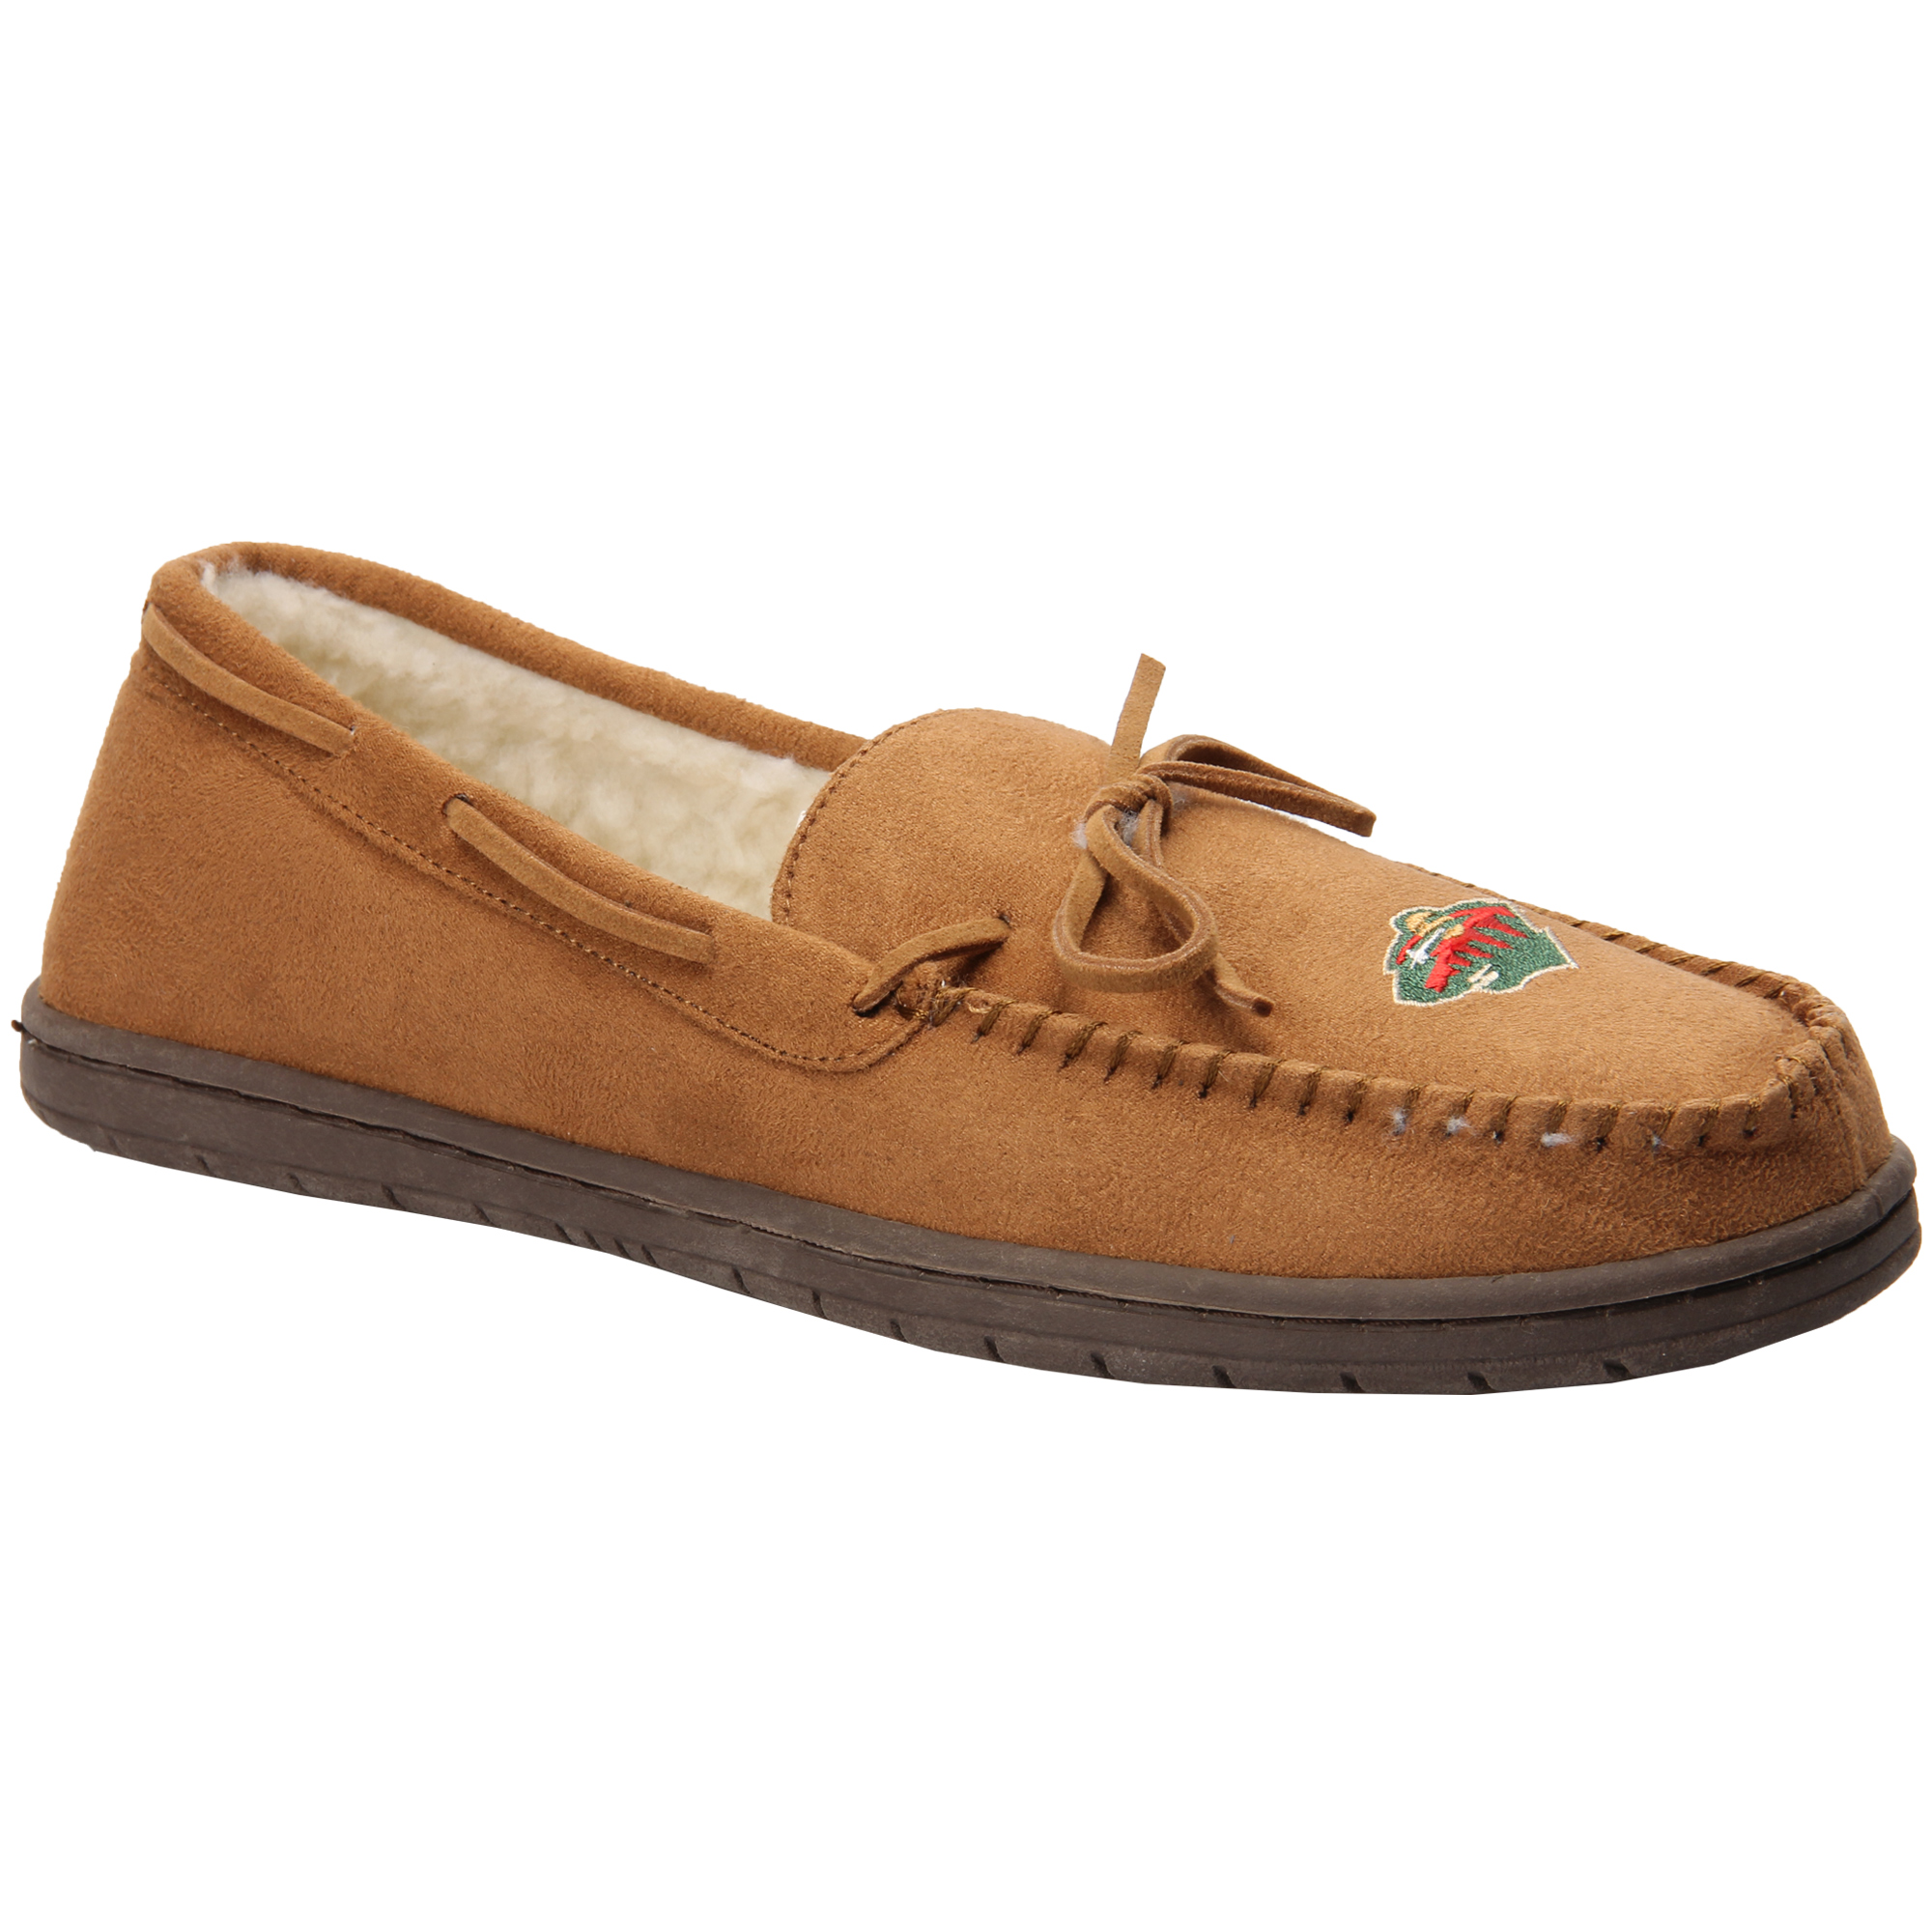 Minnesota Wild Moccasin Slippers